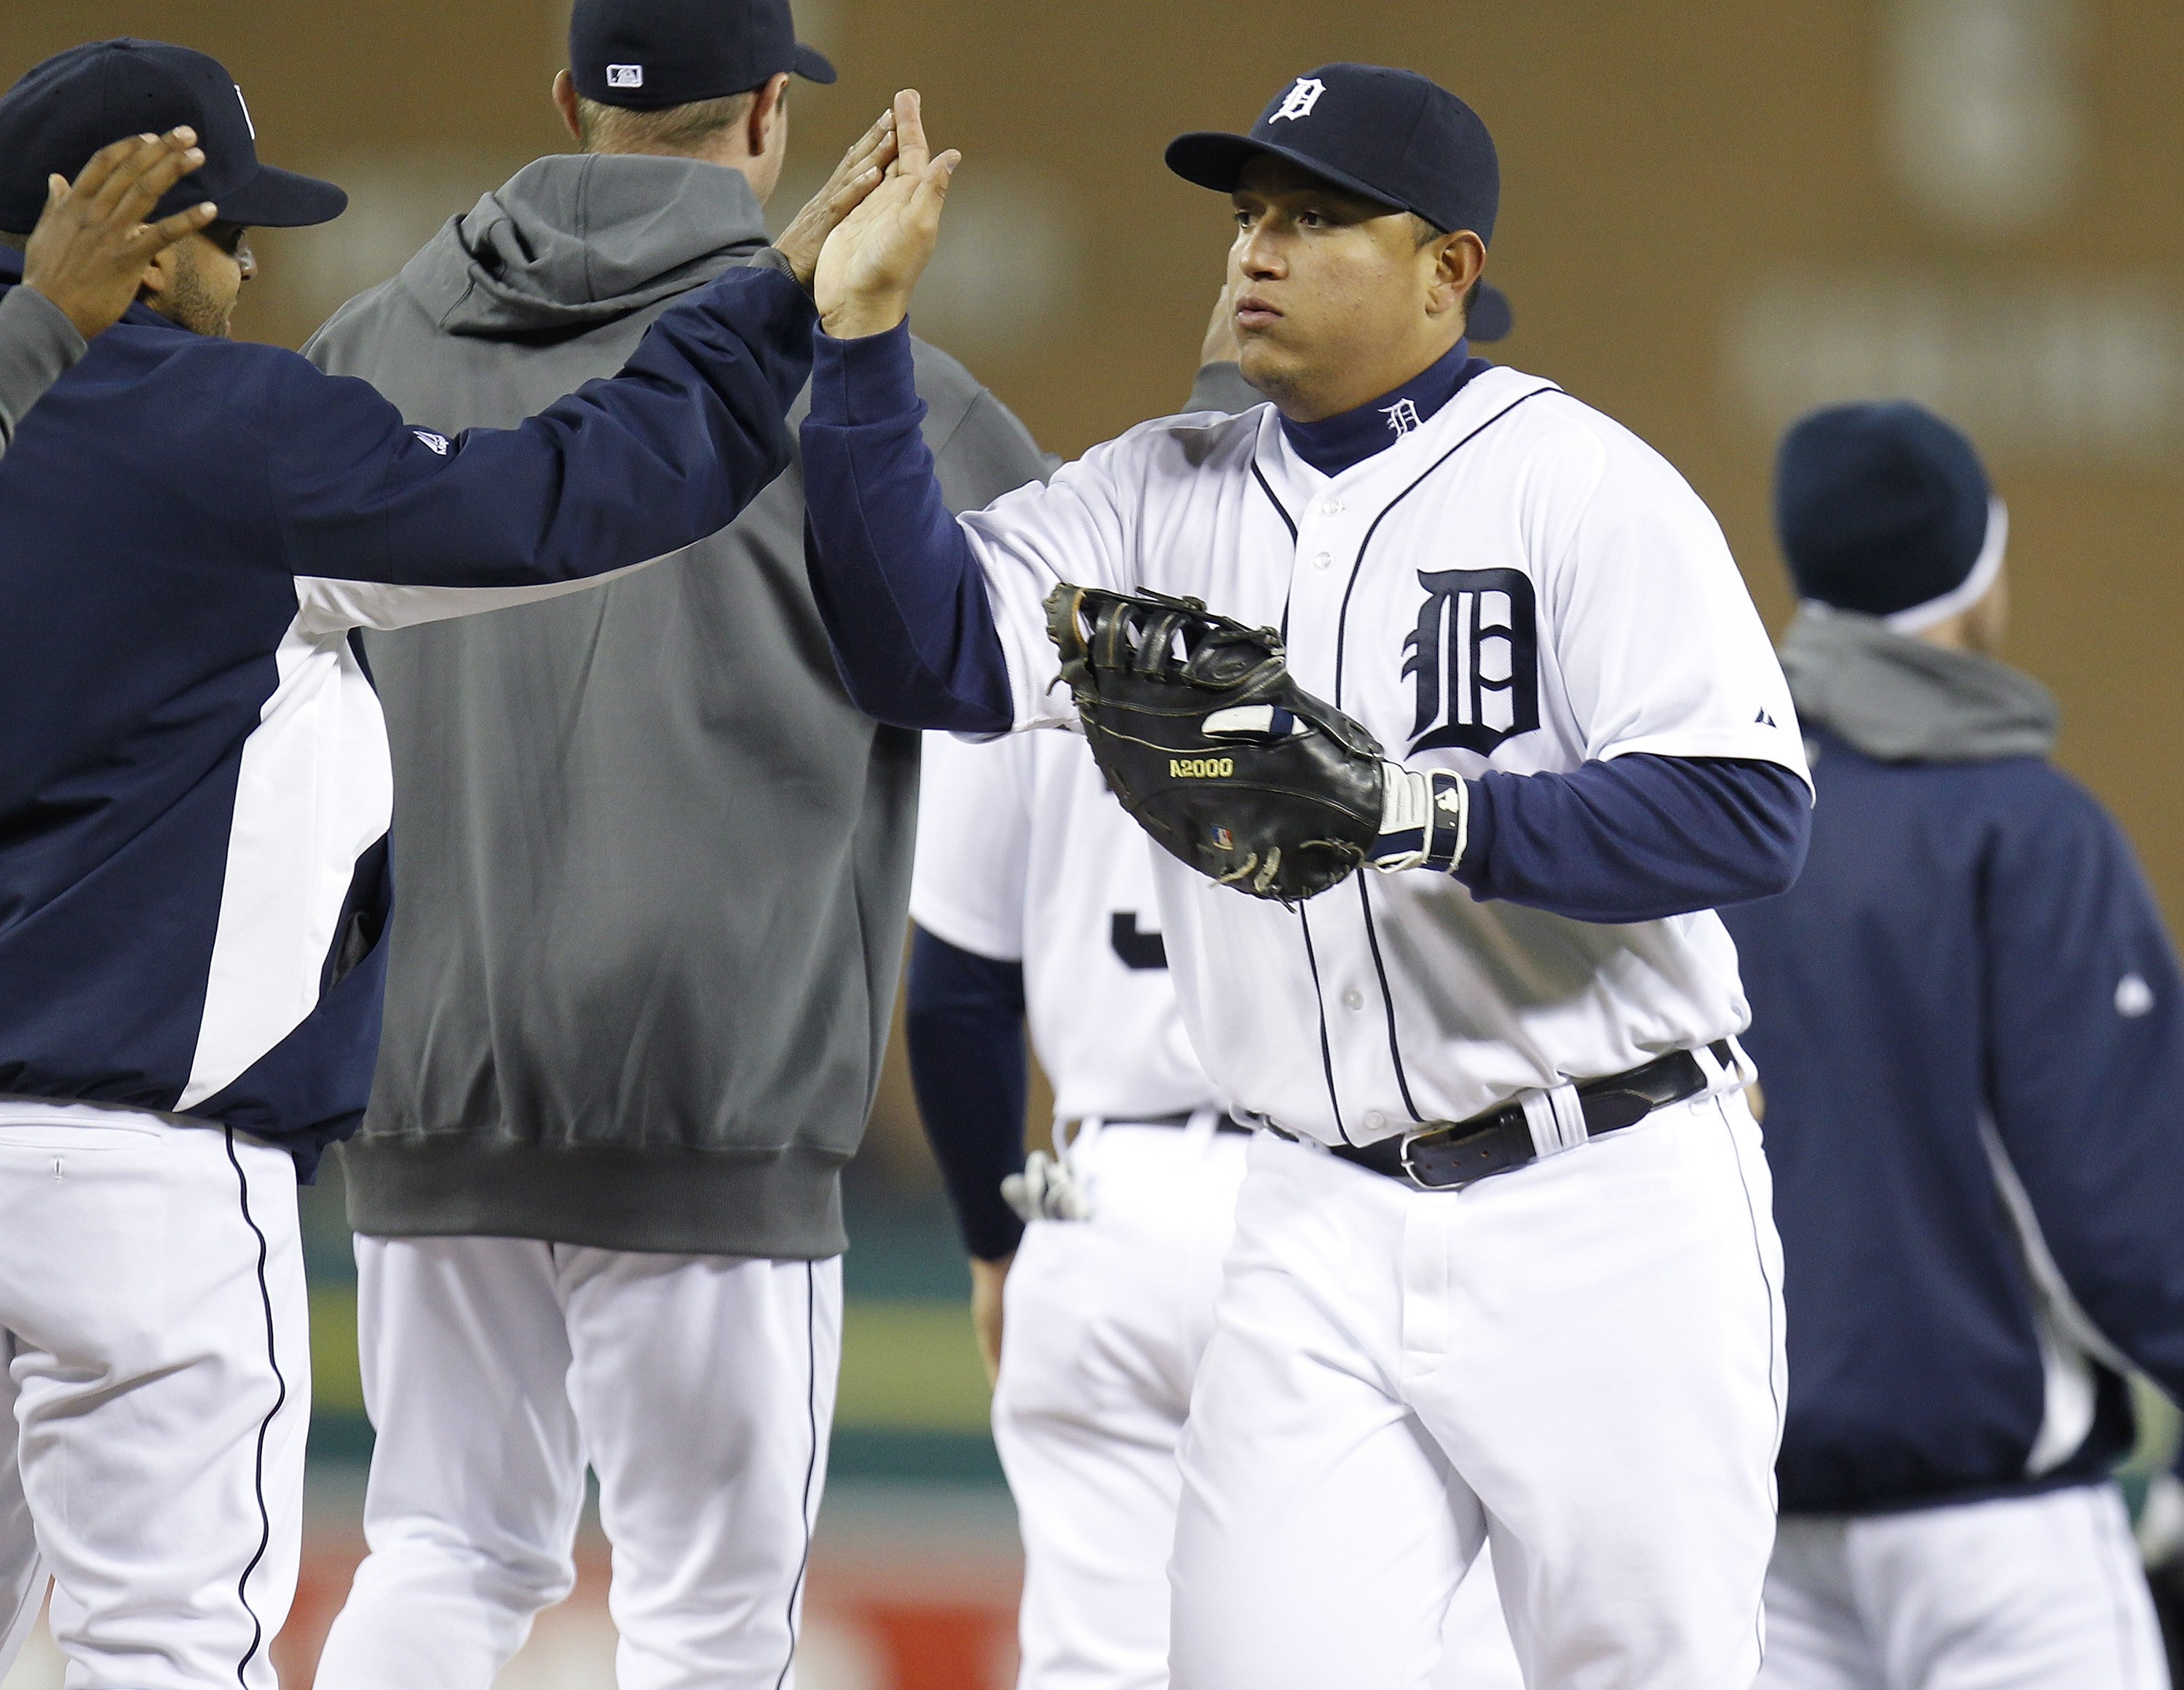 DETROIT, MI - MAY 03: Miguel Cabrera #24 of the Detroit Tigers celebrates a 4-2 victory over the New York Yankees with teammates at Comerica Park on May 3, 2011 in Detroit, Michigan. (Photo by Gregory Shamus/Getty Images)